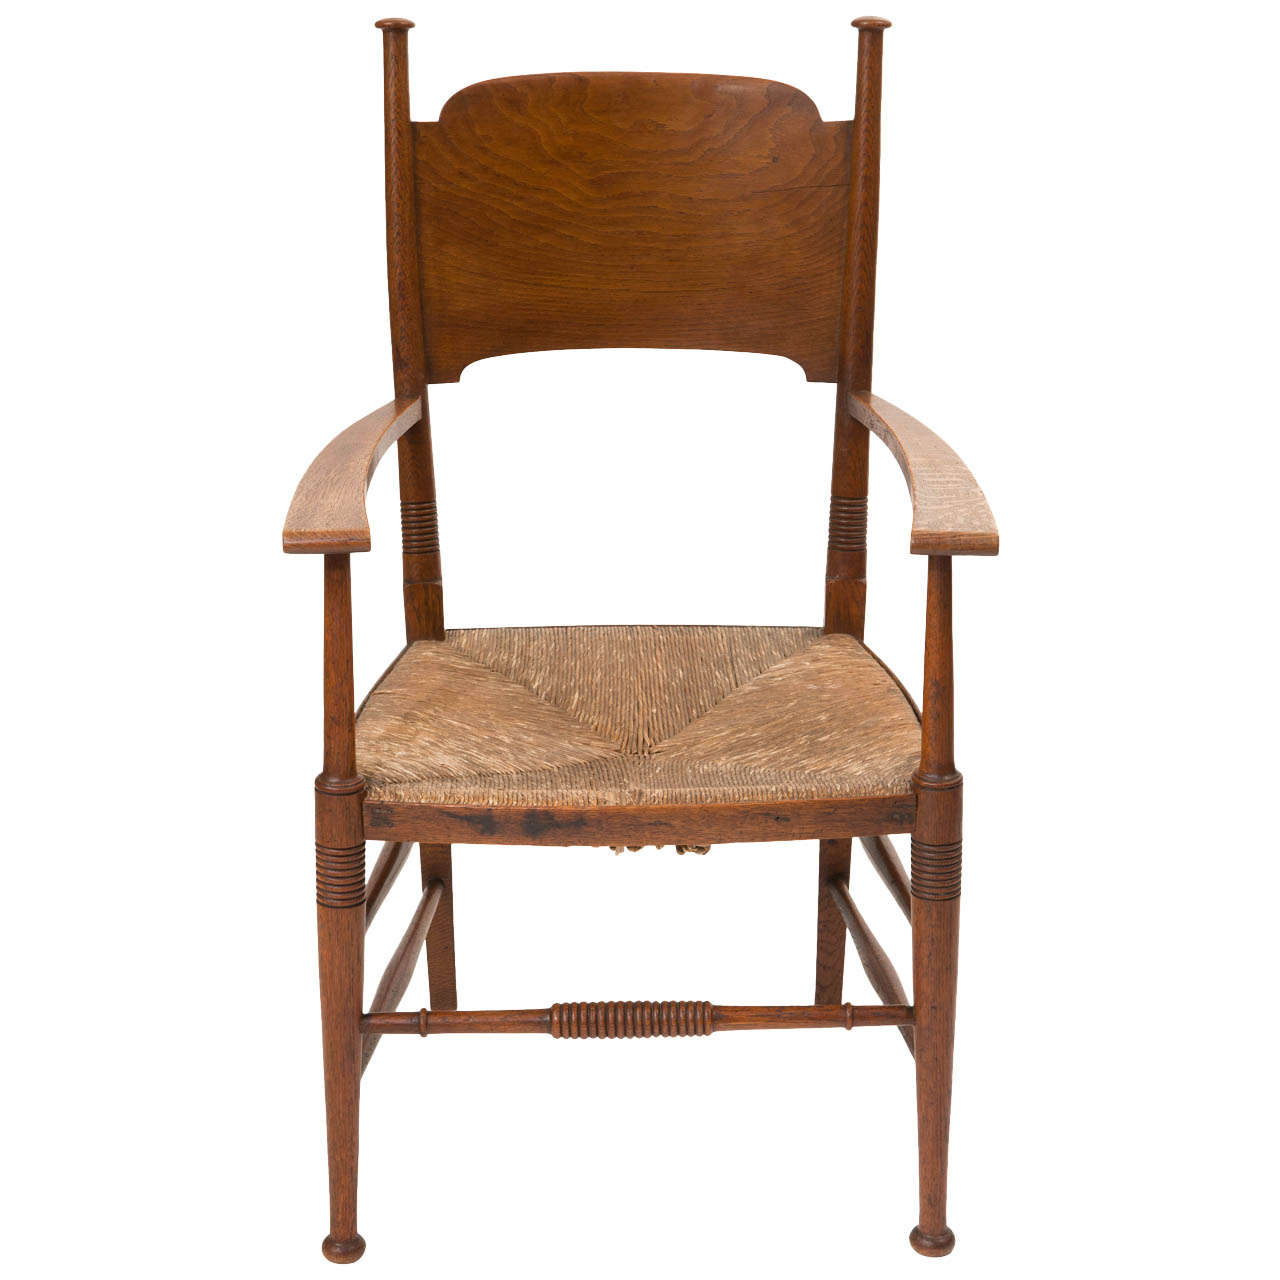 Arts and crafts furniture chair - William Birch Arts And Crafts Elm Armchair England Circa 1890 1